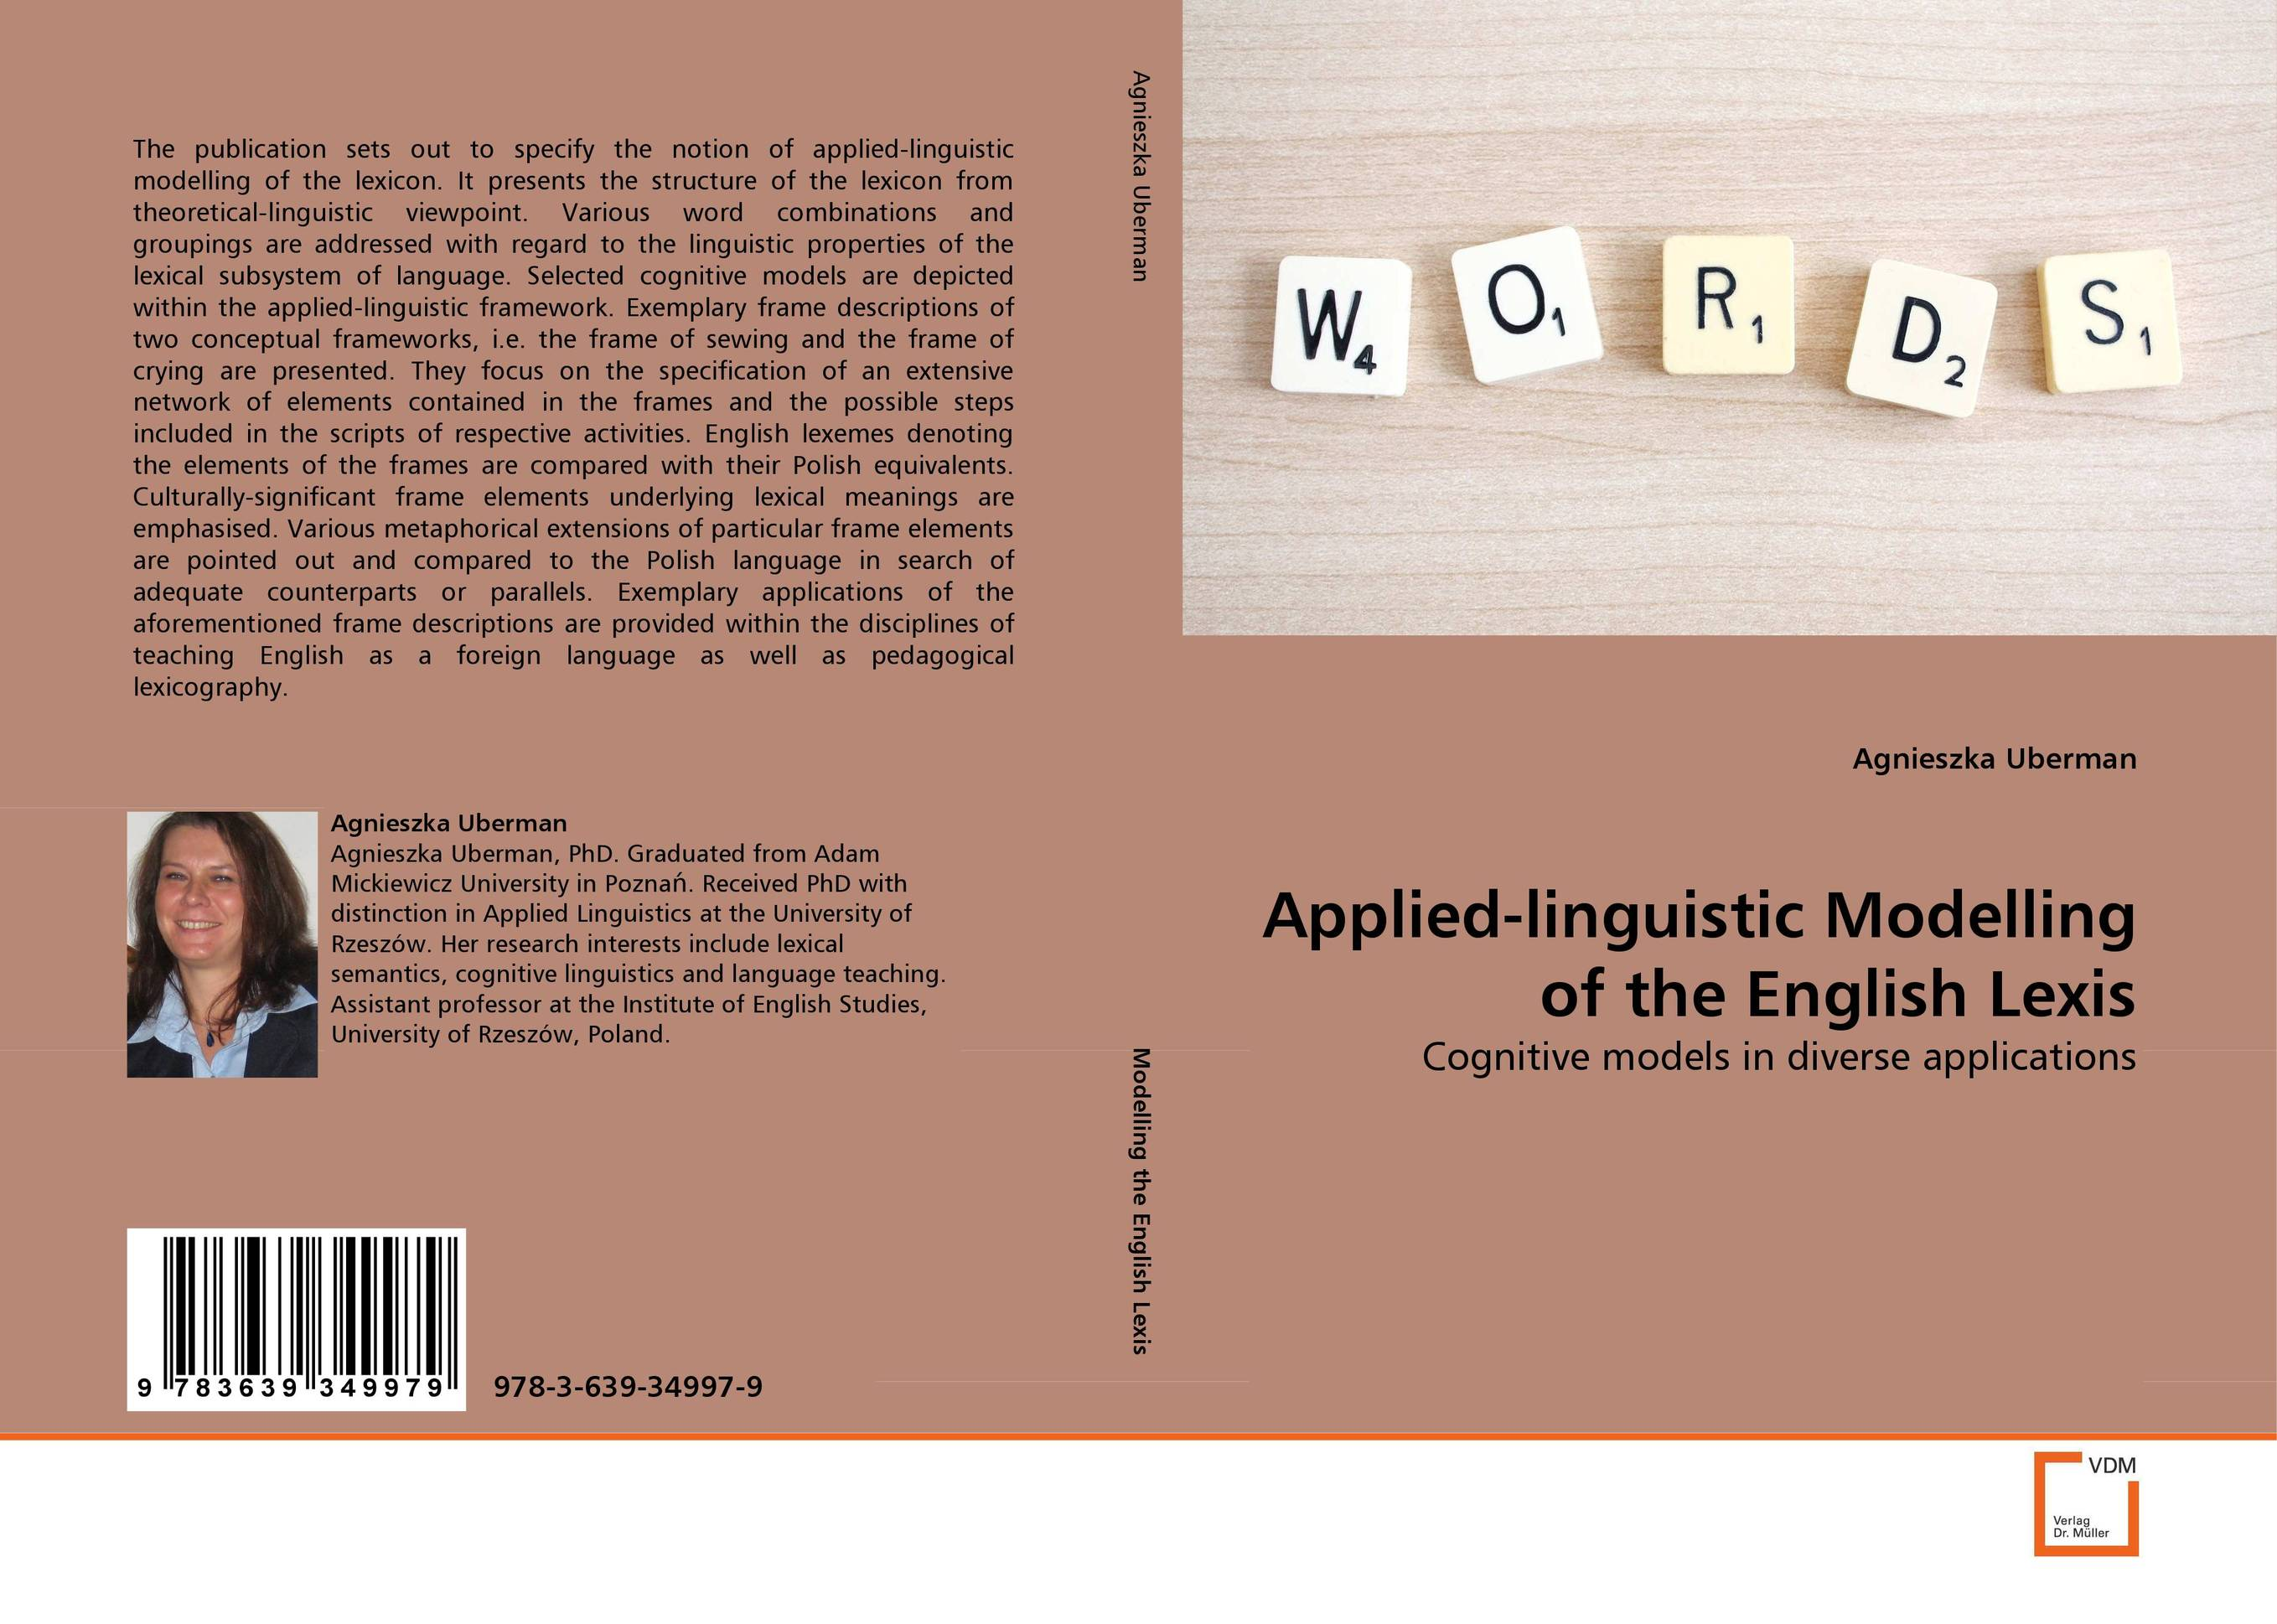 Applied-linguistic Modelling of the English Lexis katz an integrated theory of linguistic descriptions pr only